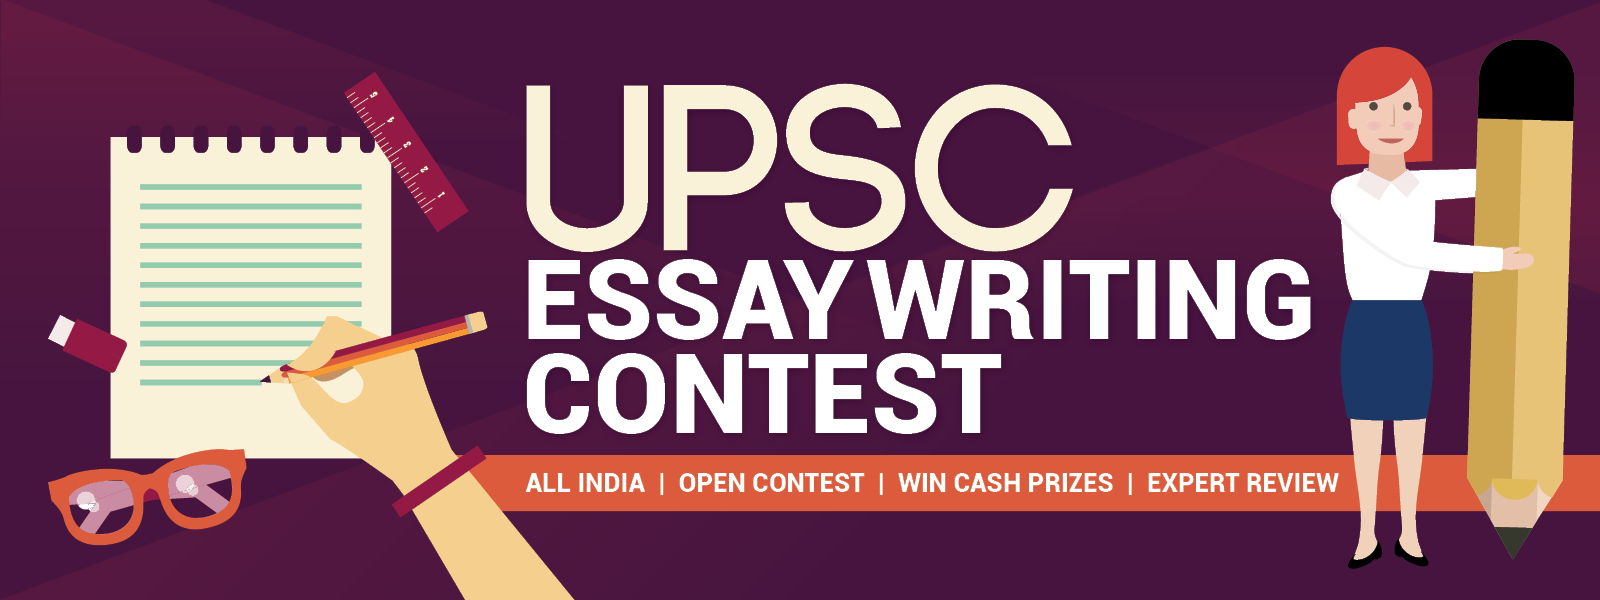 writing contest essay